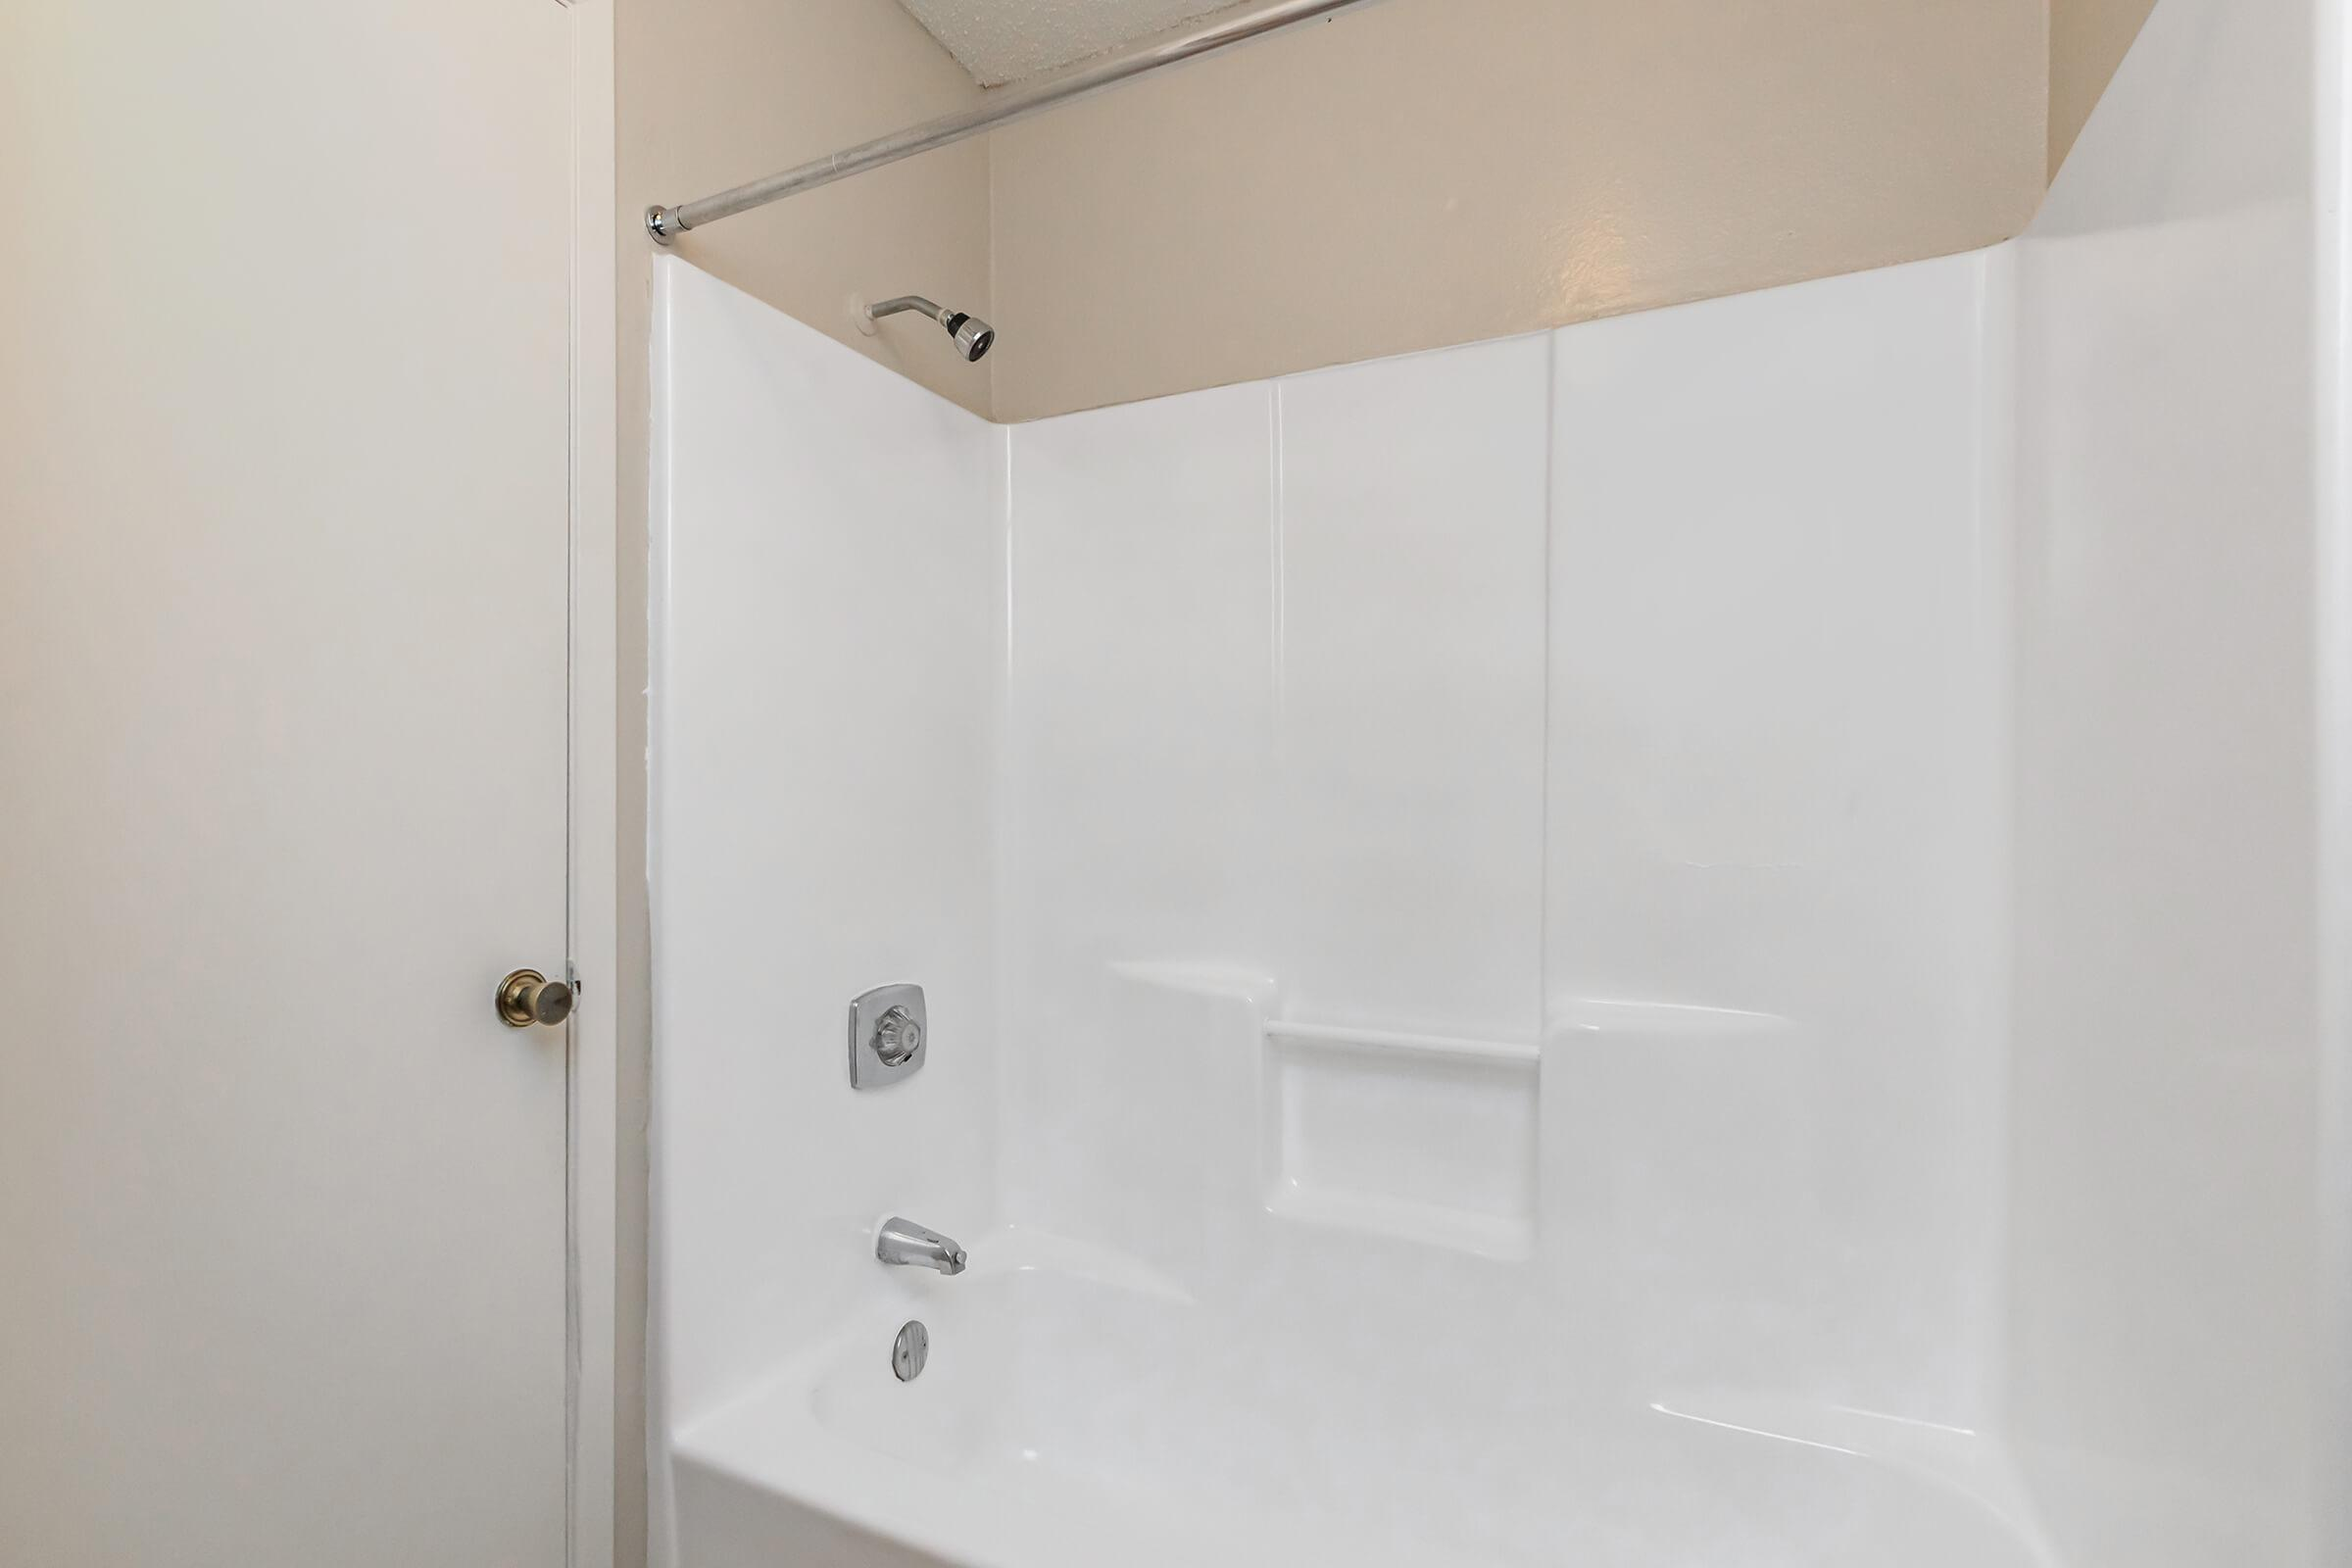 a close up of a shower in a room